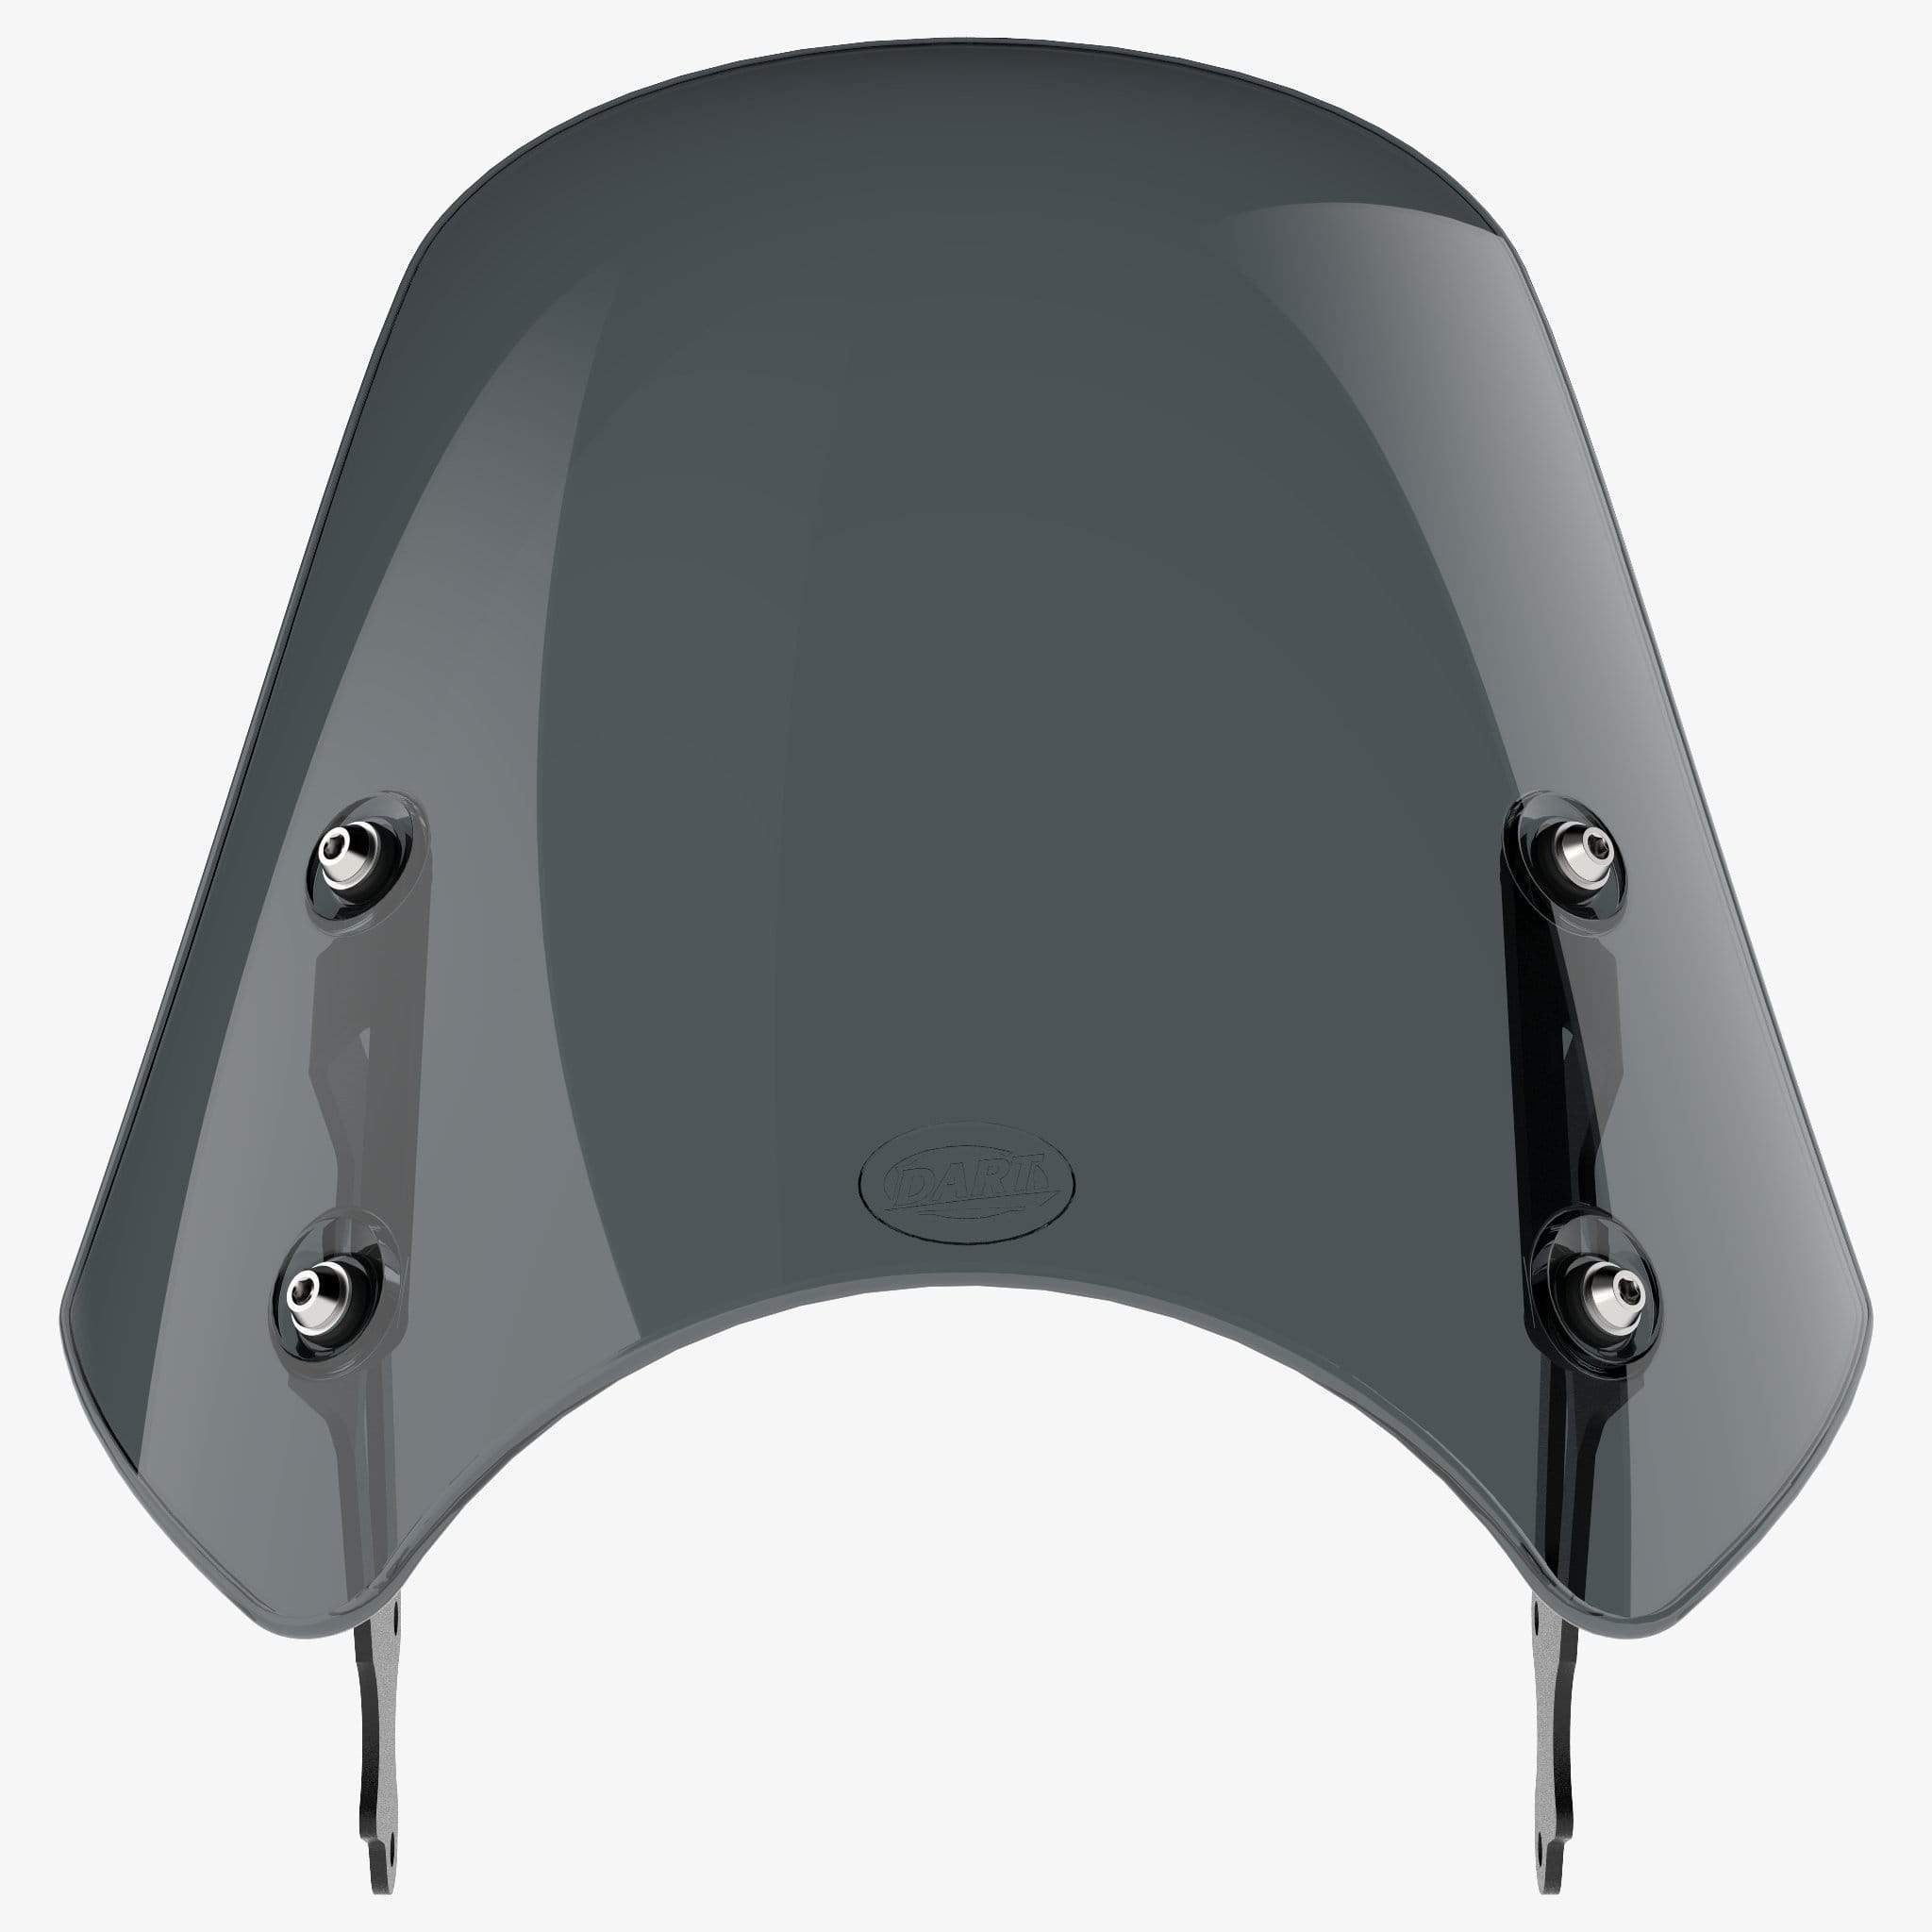 Yamaha XSR900 - Marlin Dark Tint Marlin flyscreen Dart Flyscreen Windshield